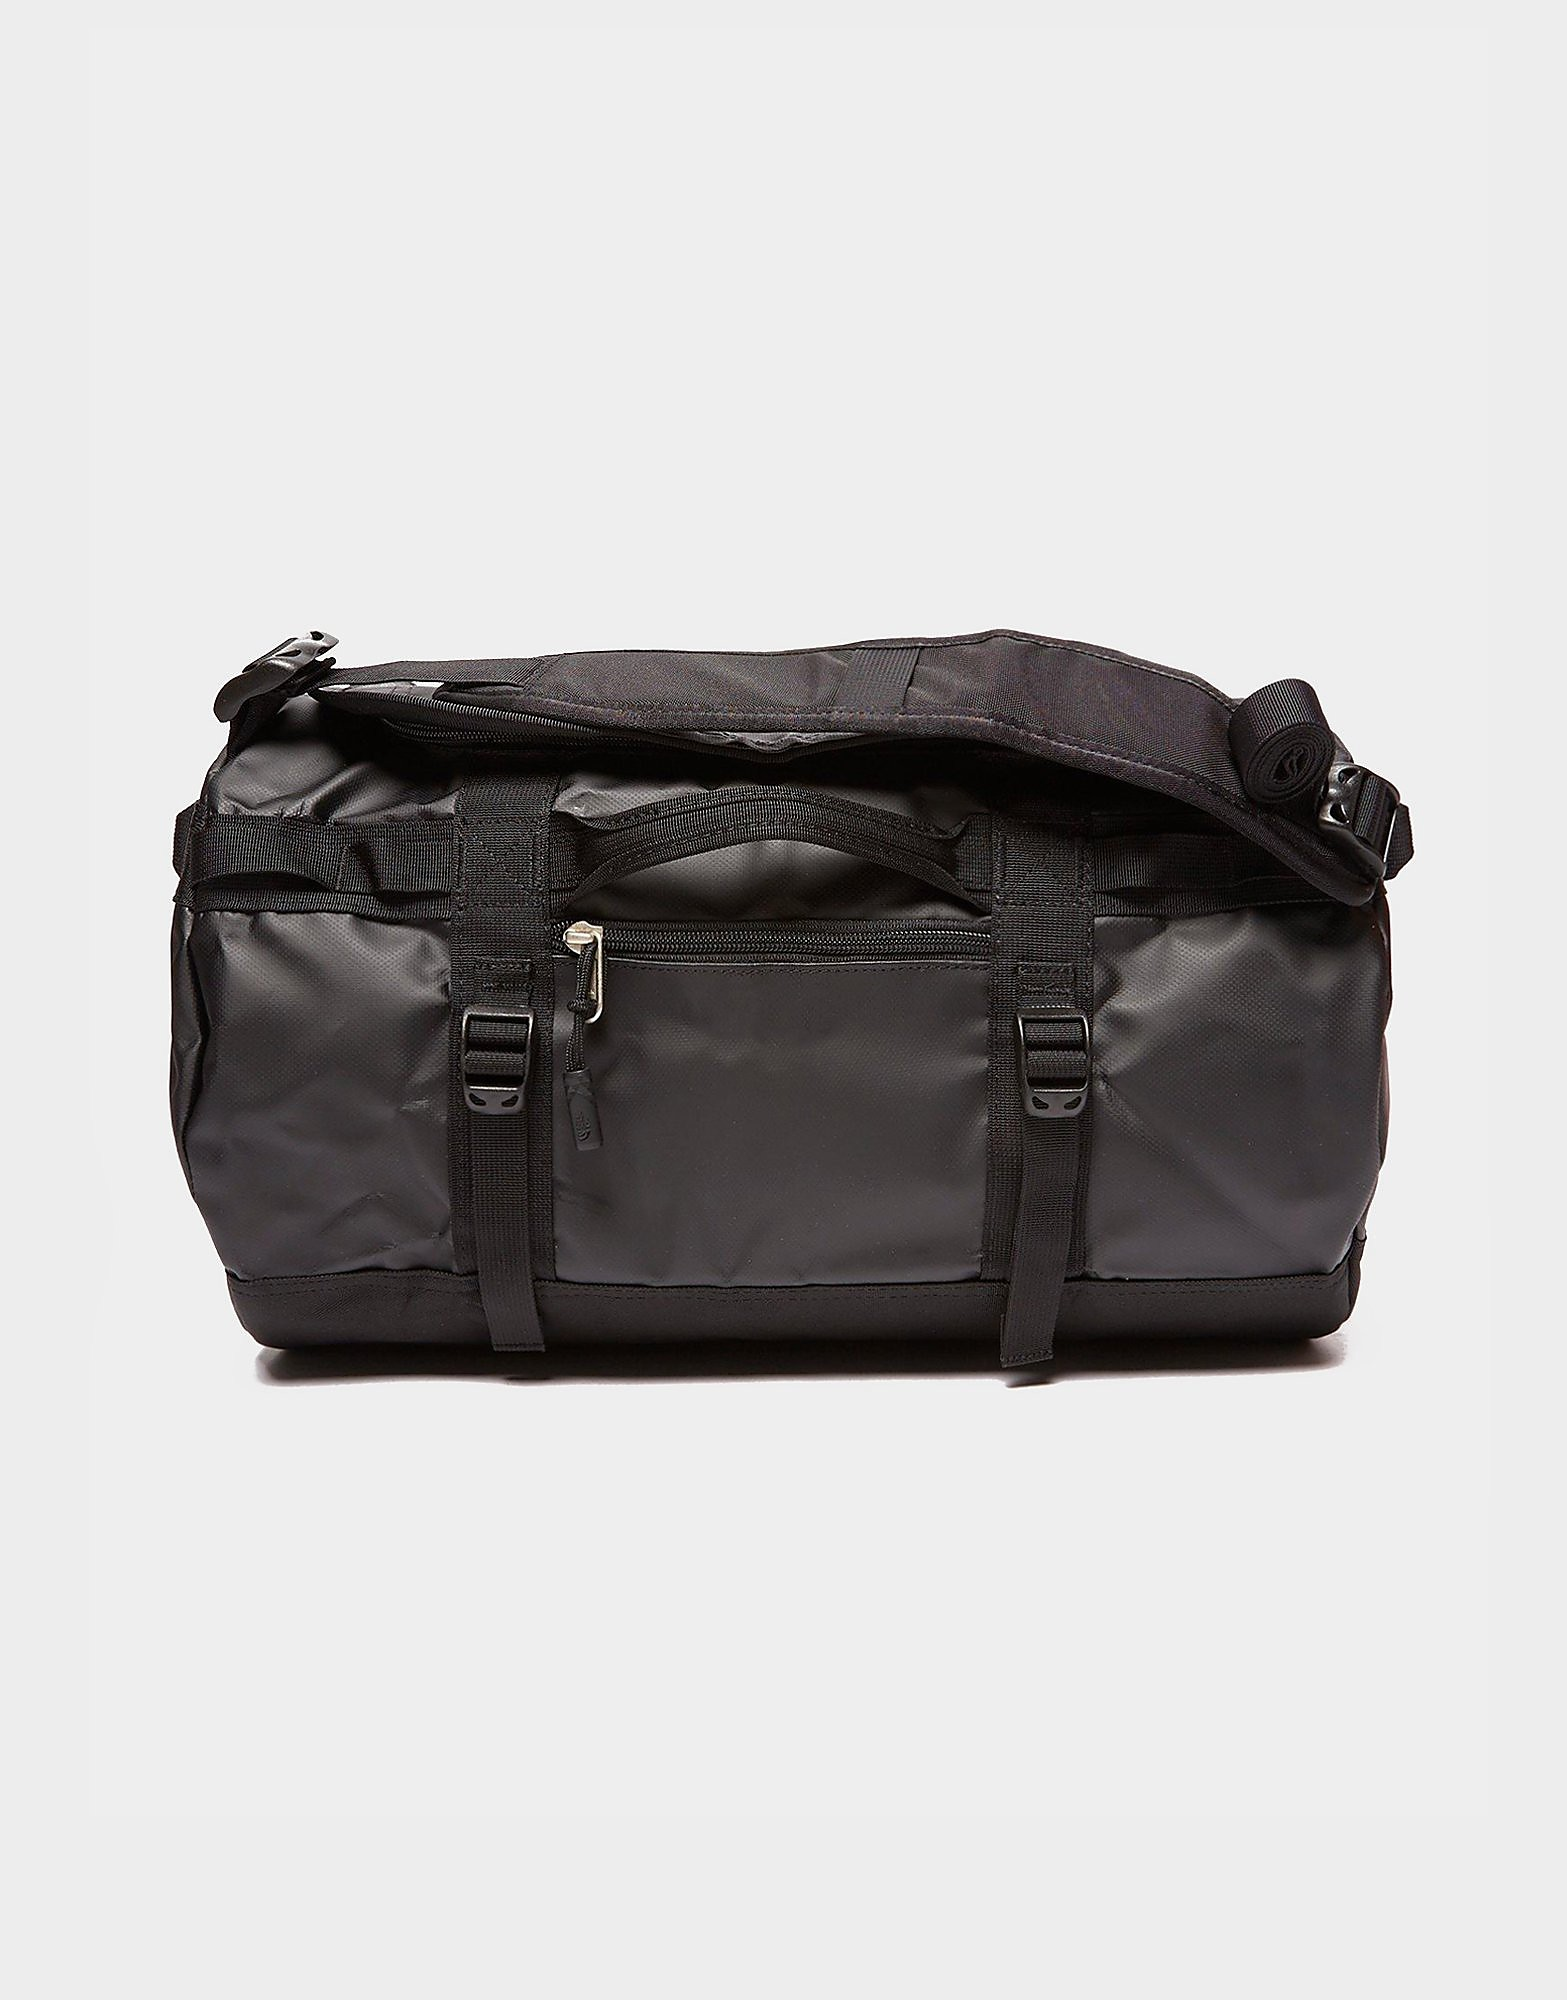 The North Face Large Base Camp Duffle Bag